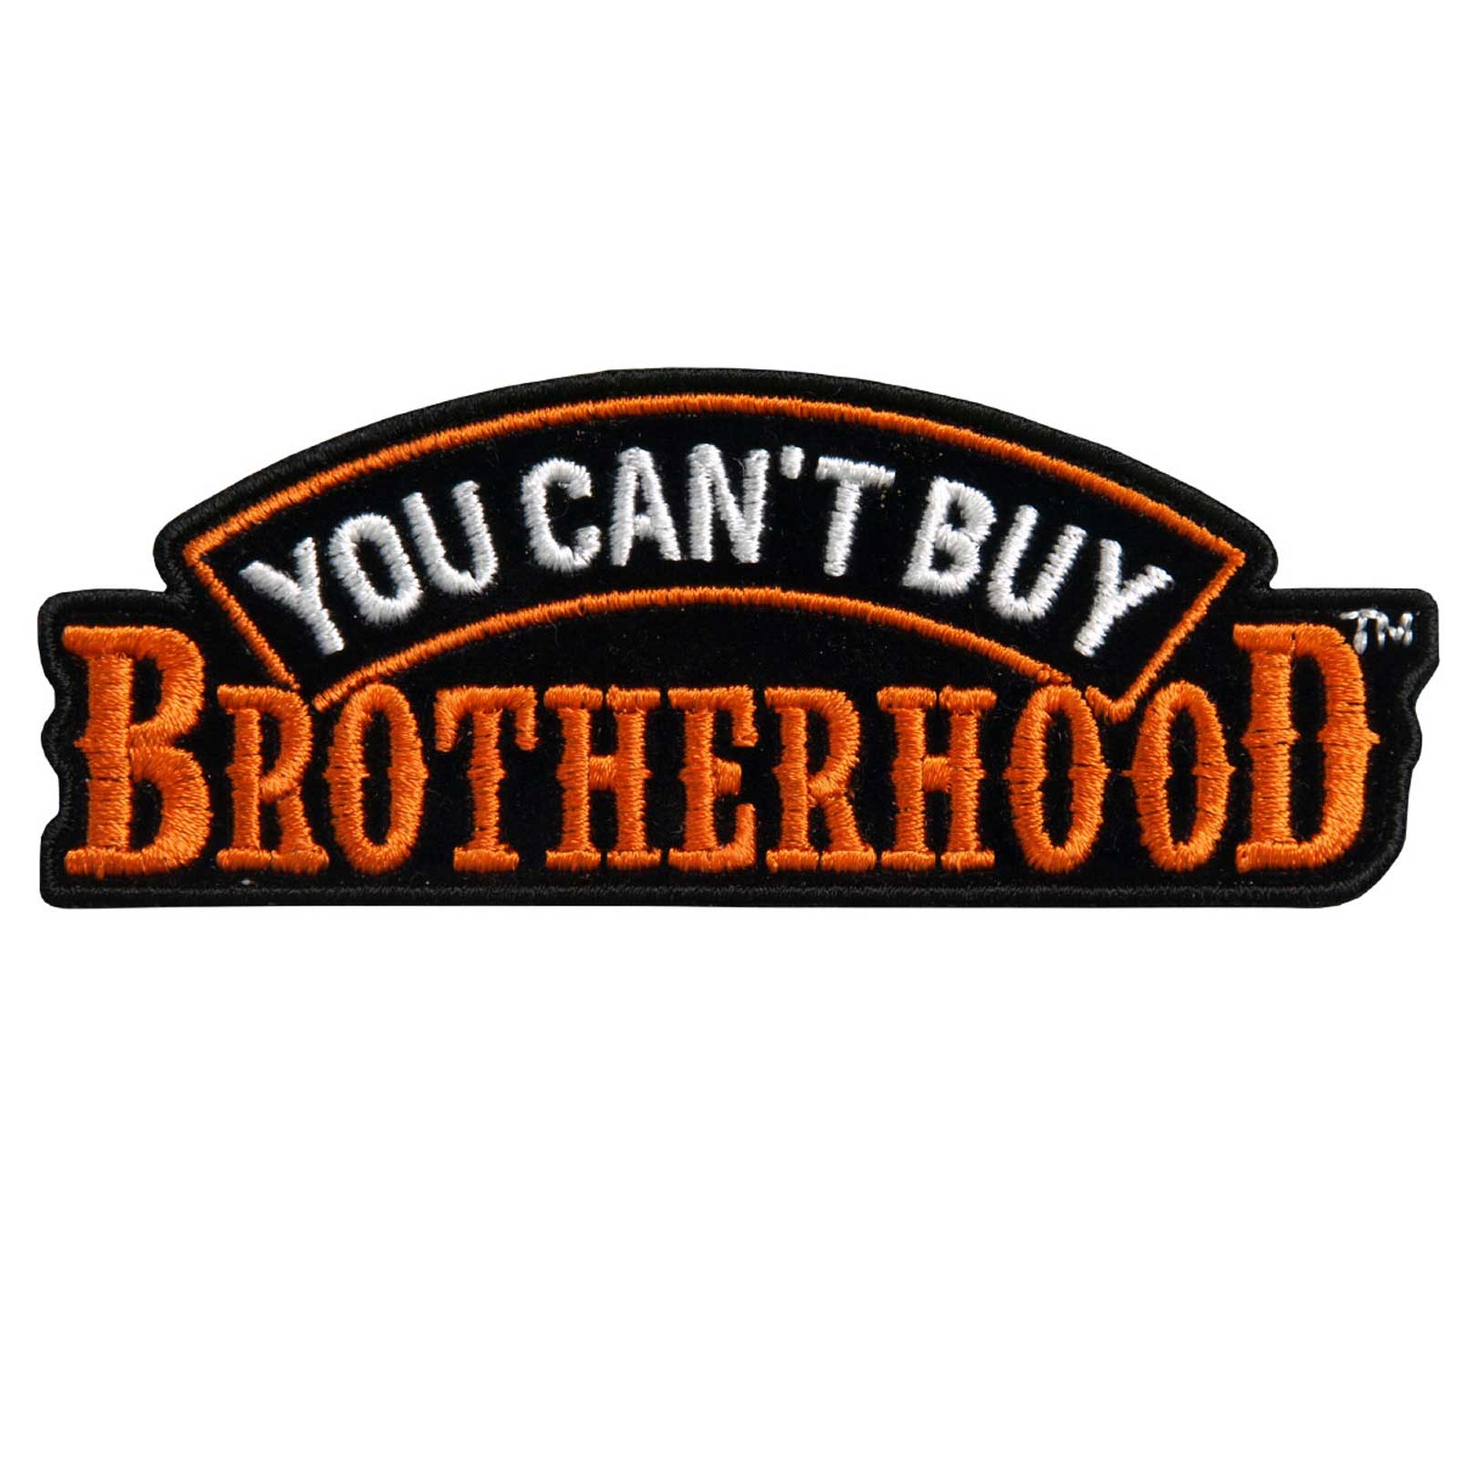 You can't buy Brotherhood Patch 12 PPA7788